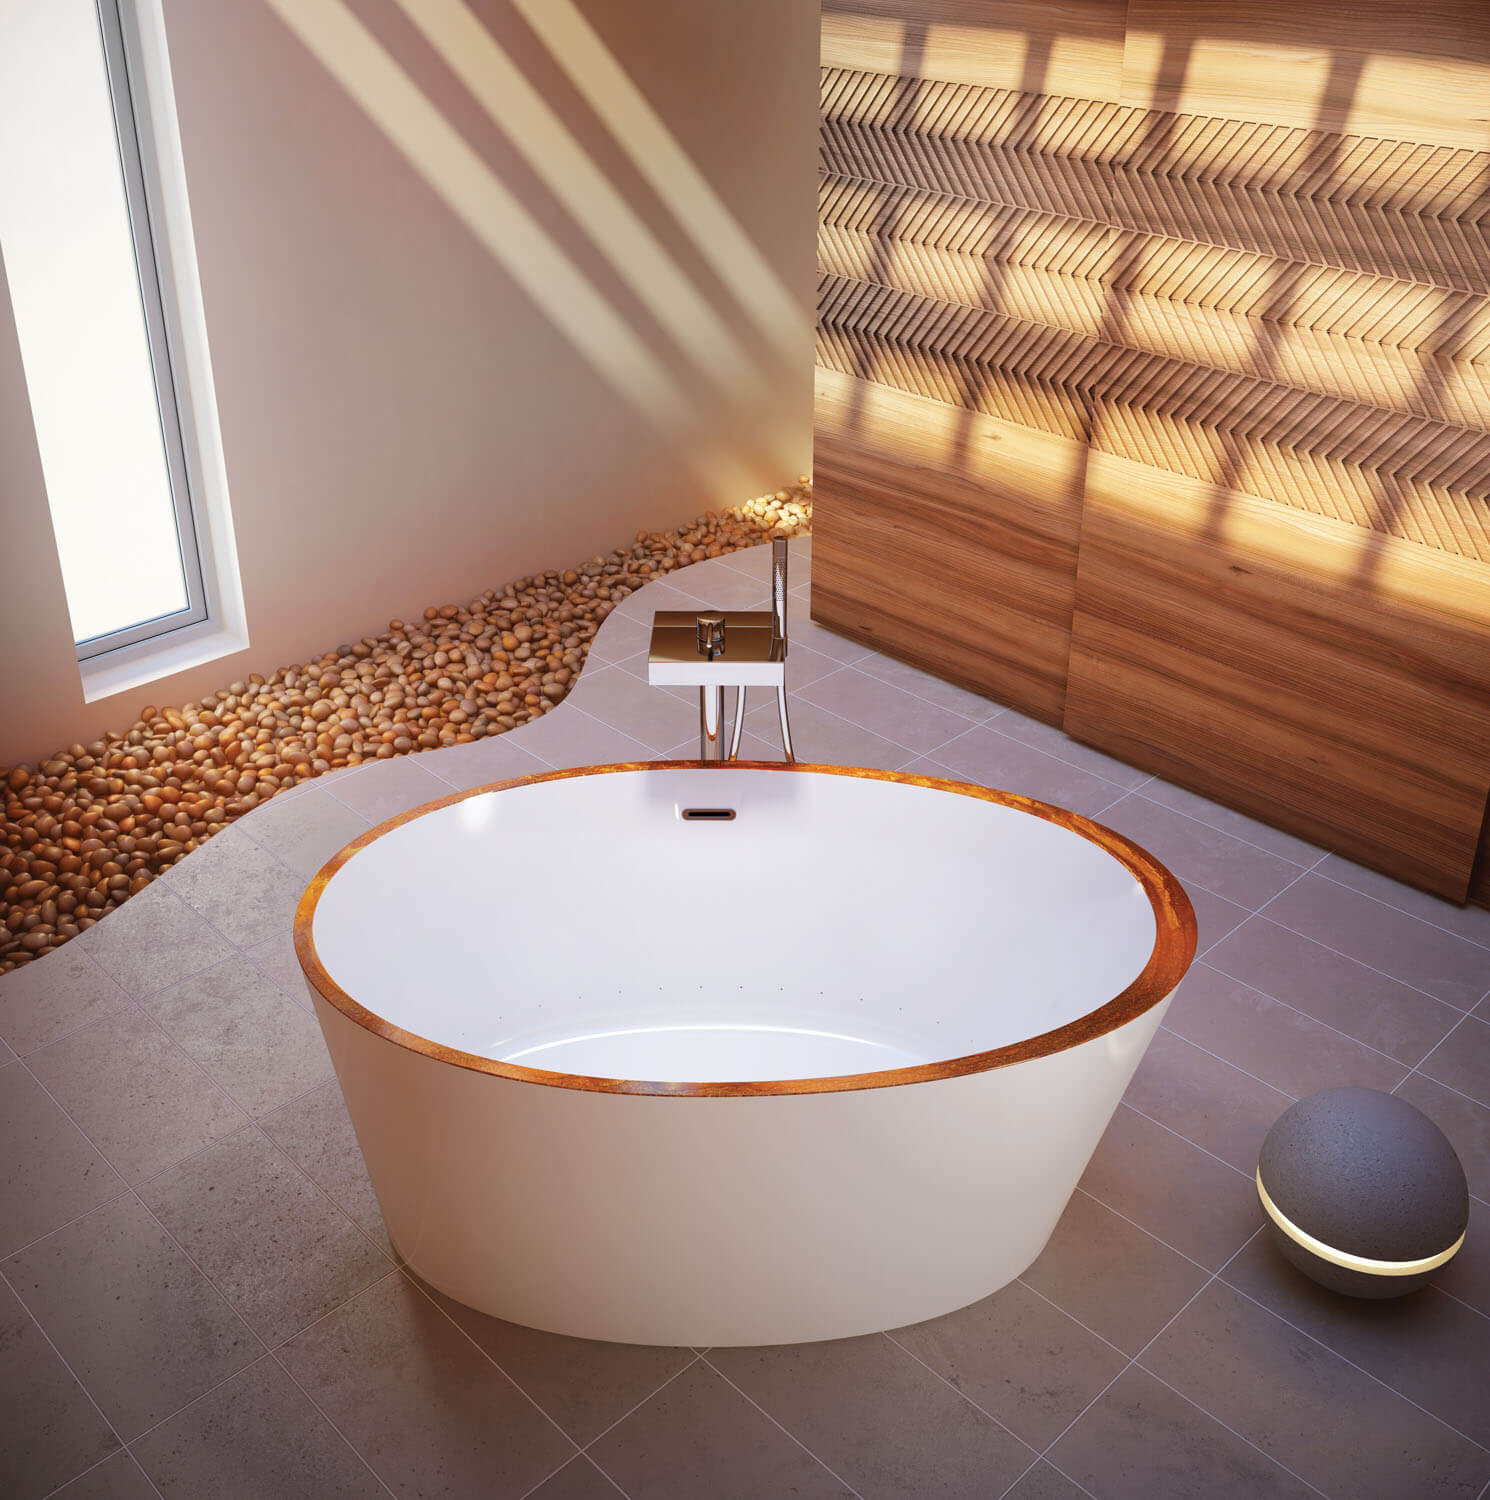 Bainultra Charism 5736 freestanding air jet bathtub for your modern bathroom